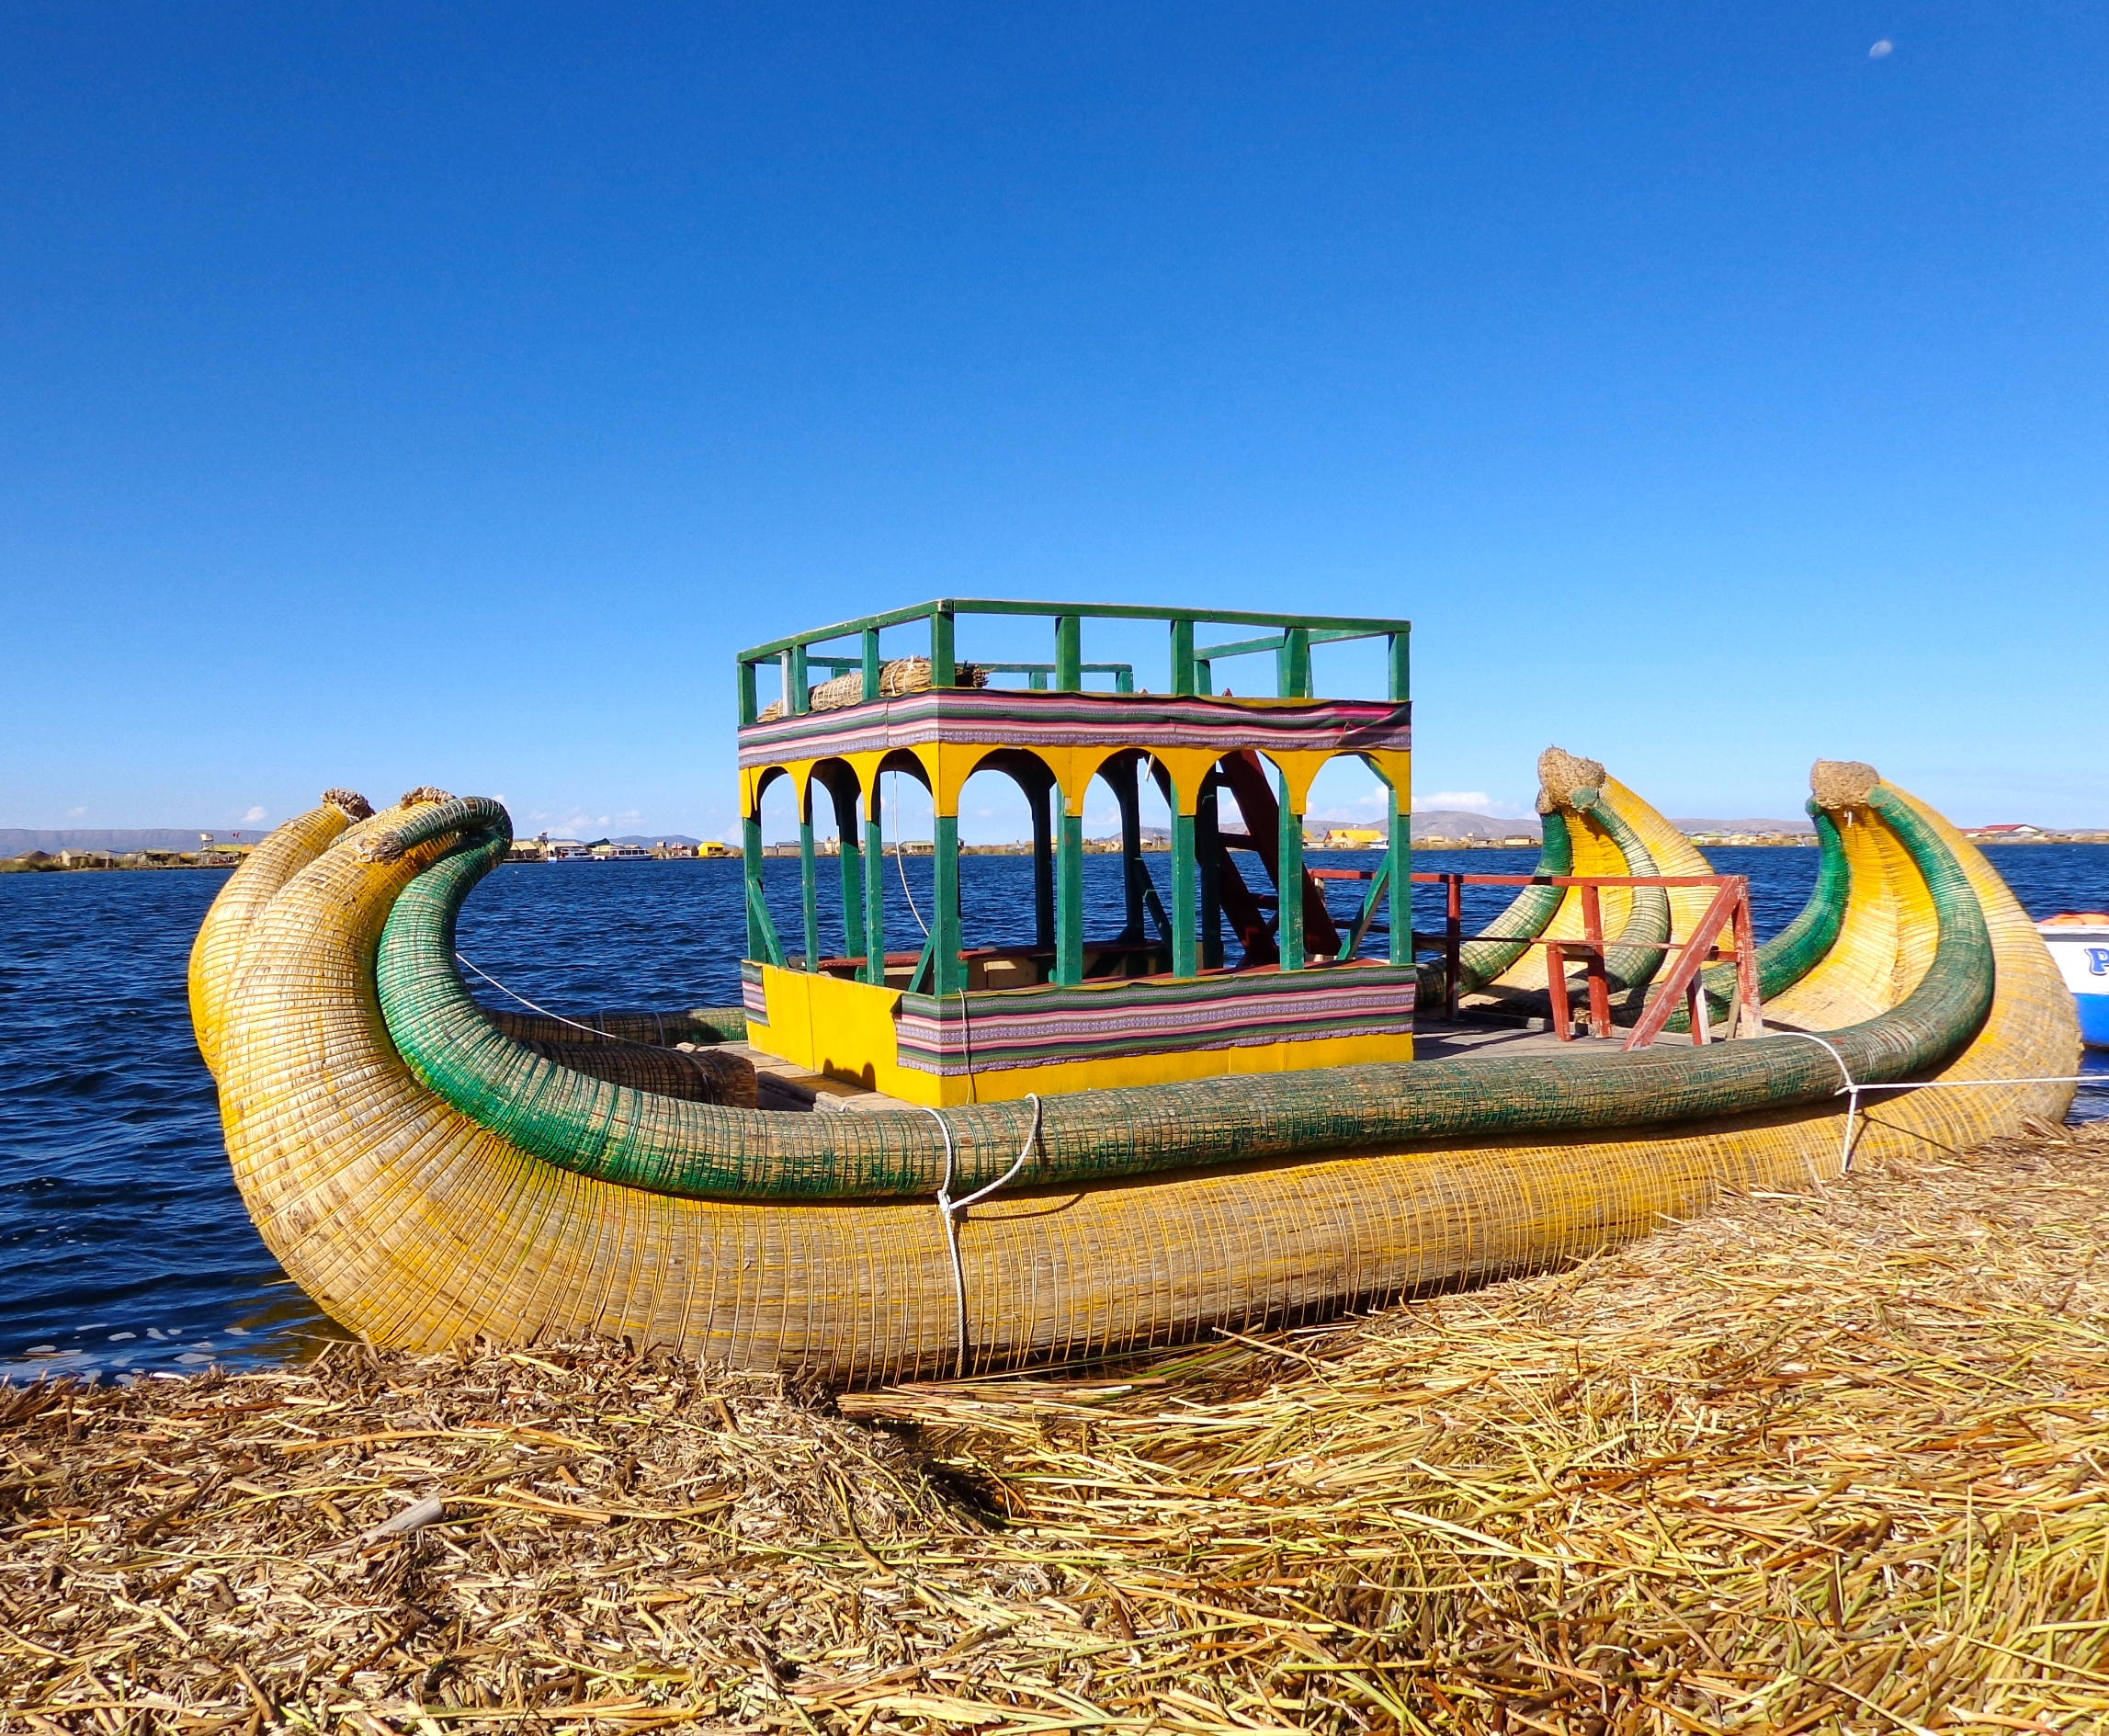 A reed boat made of the same material as the Uros Islands in Puno